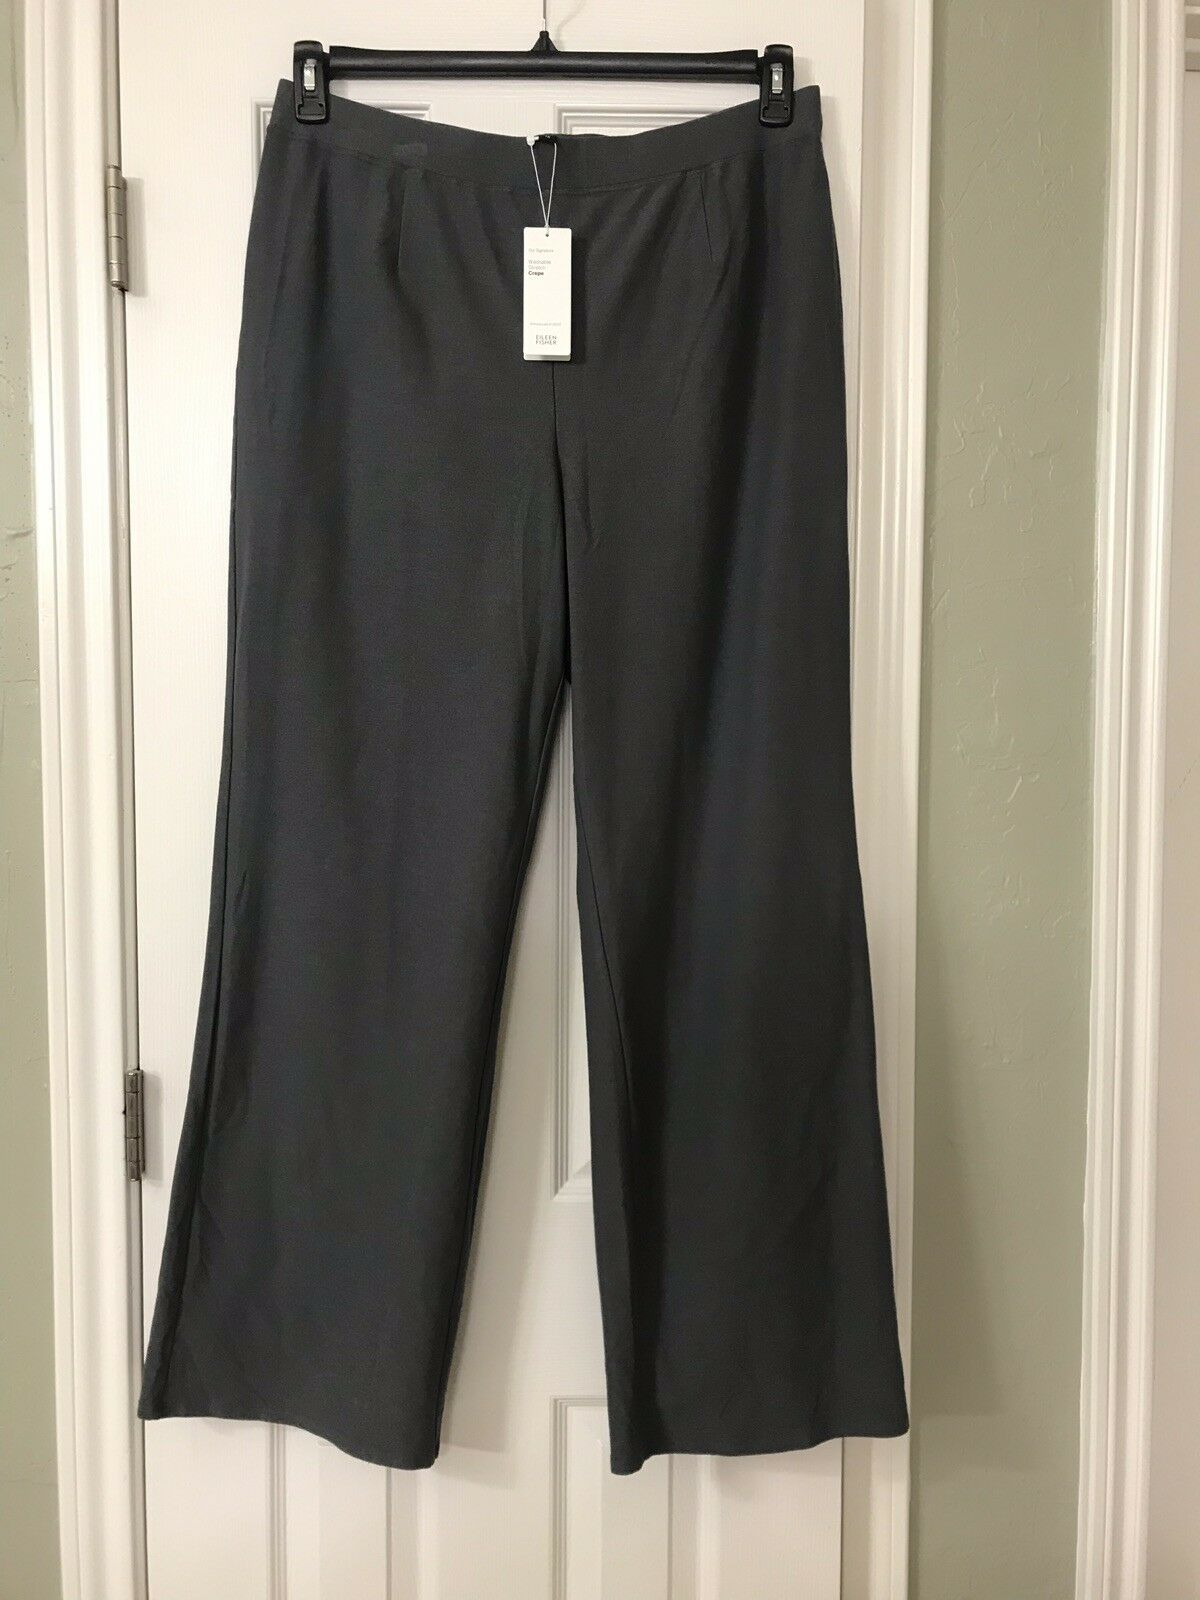 3X NEW EILEEN FISHER ASH WASHABLE STRETCH CREPE MODERN WIDE LEG PANTS WITH YOKE